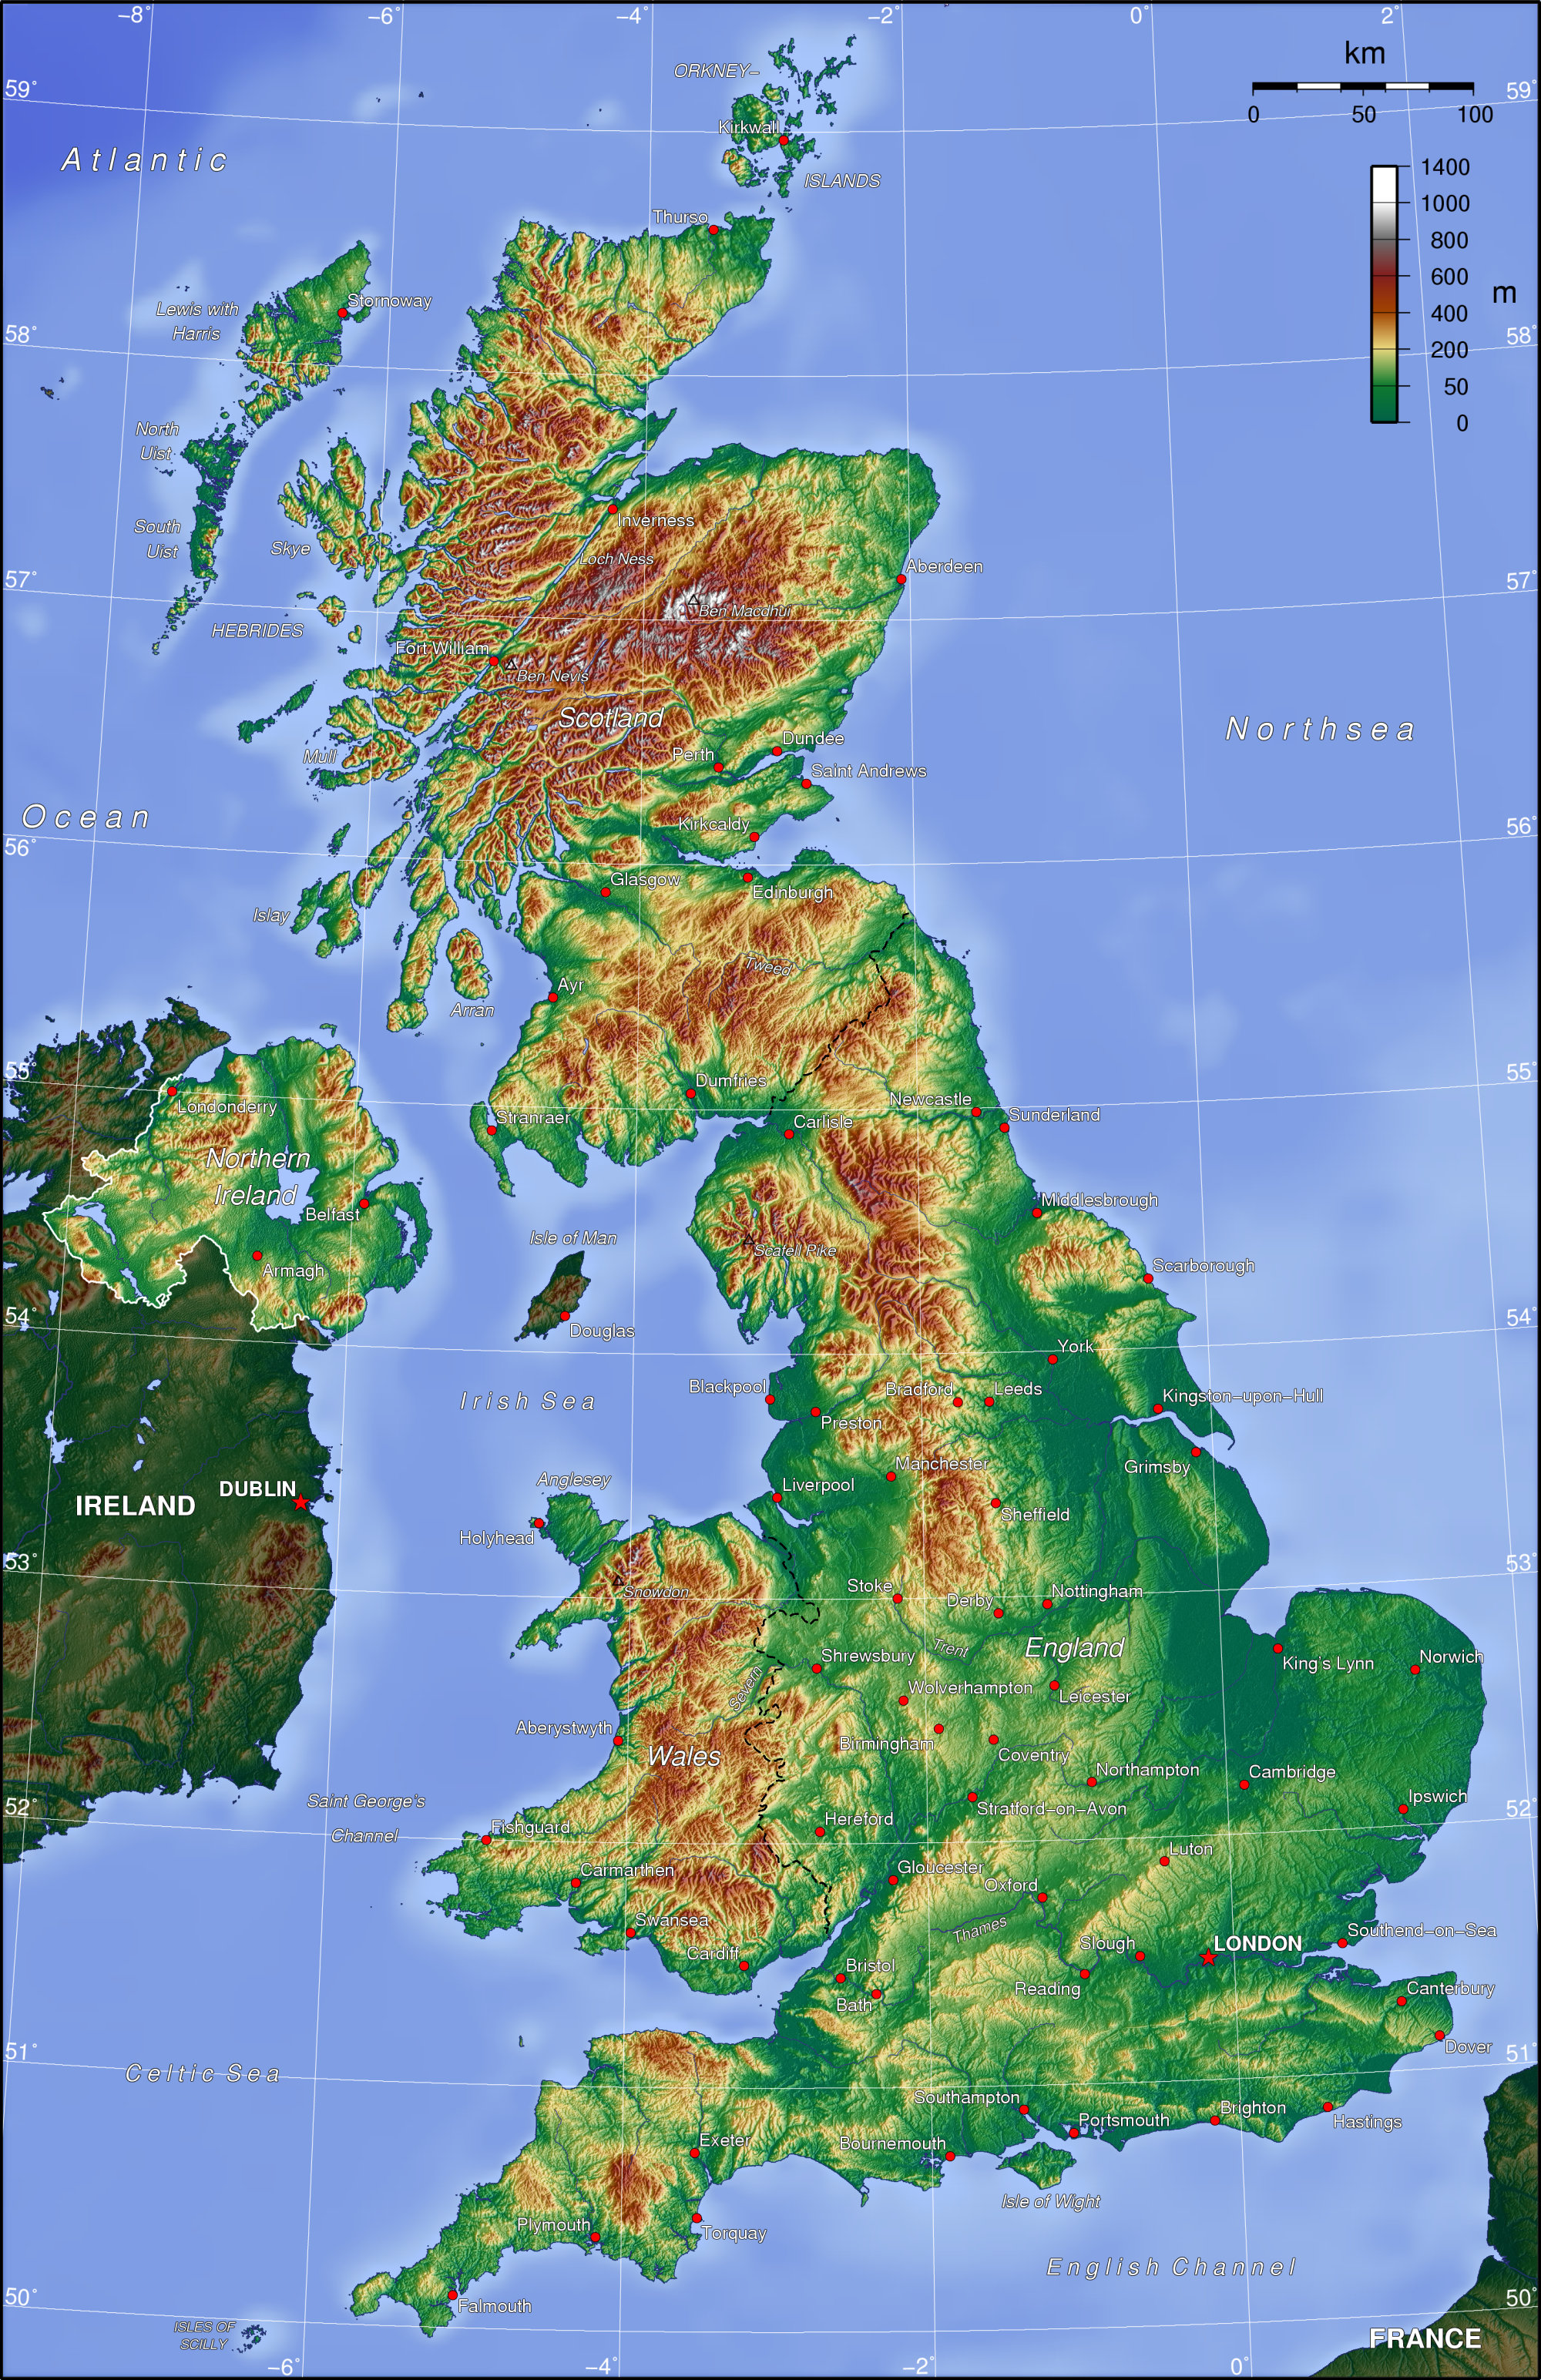 Map Colored By Elevation Like UK Topo Map - Terrain map uk